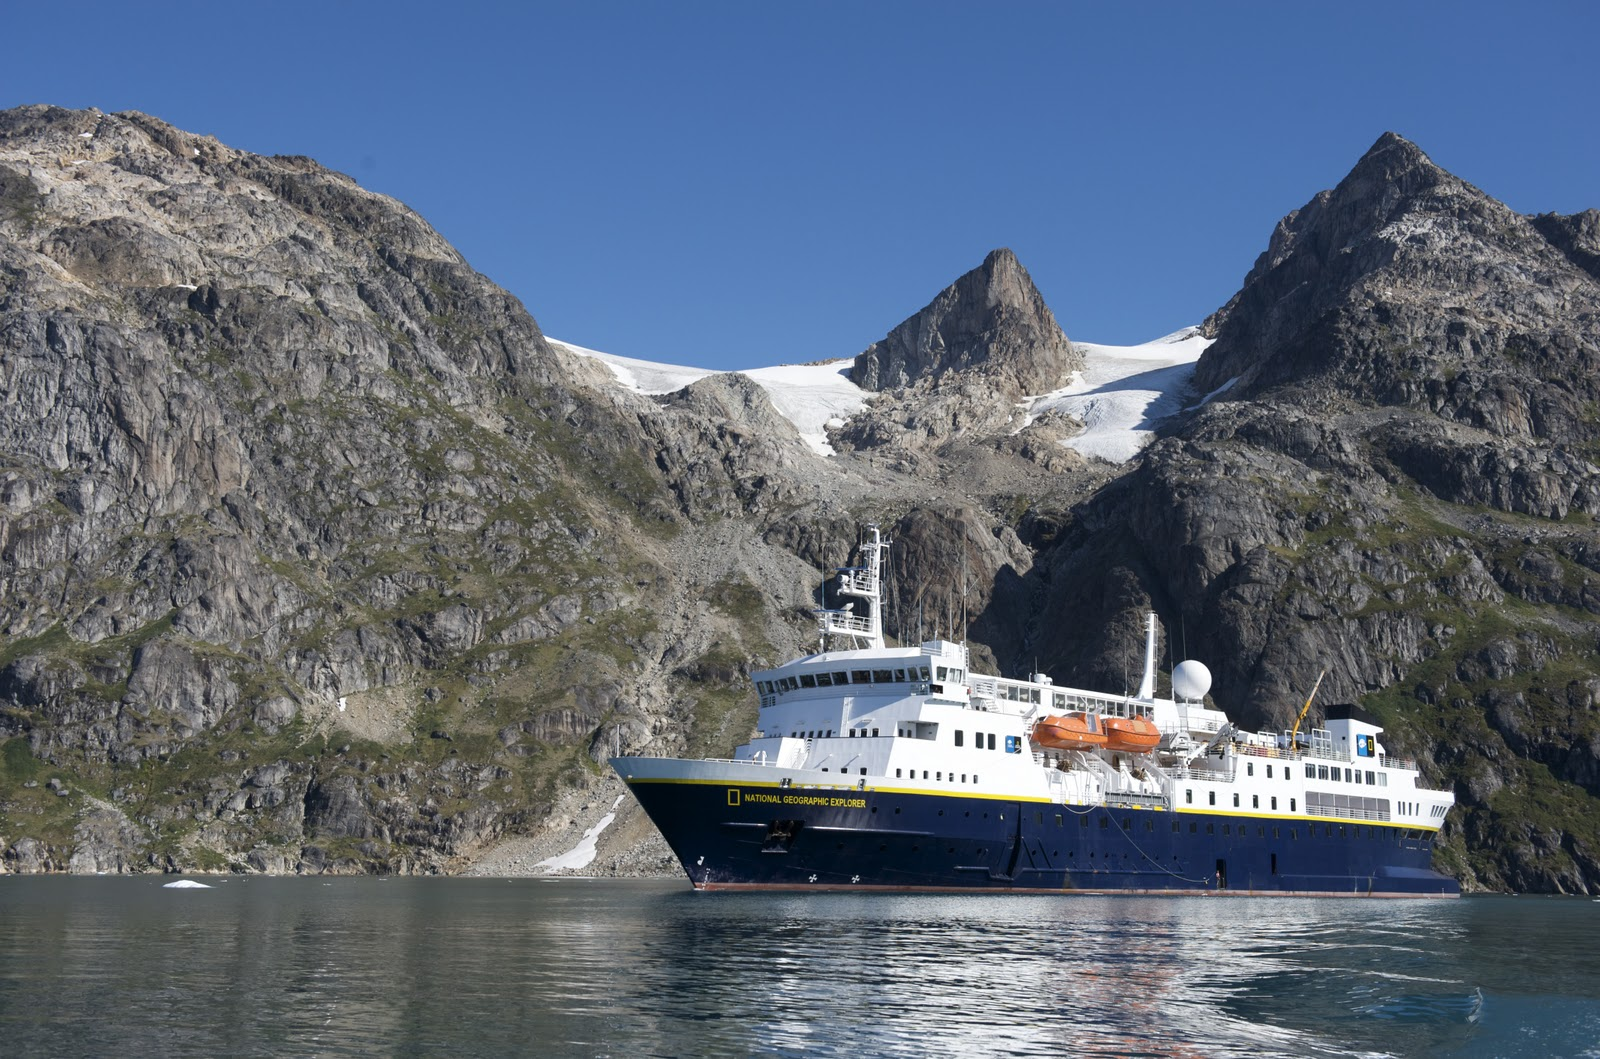 antarctica ships luxury expedition national geographic explorer